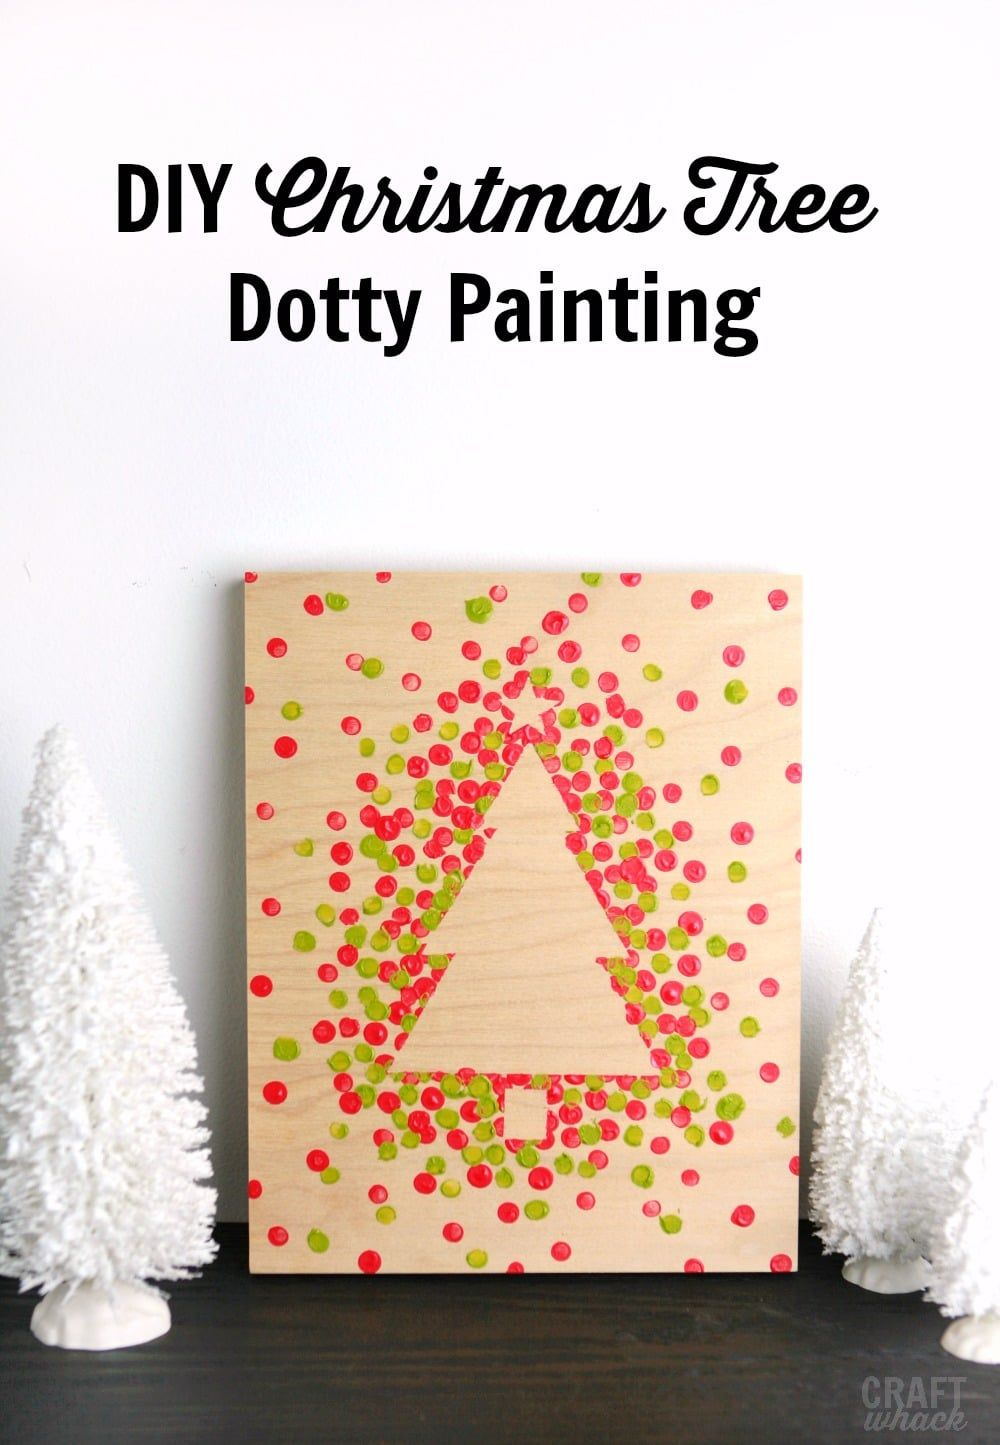 Easy and Adorable Dotty Christmas Tree Paintings · Craftwhack #christmascardskids